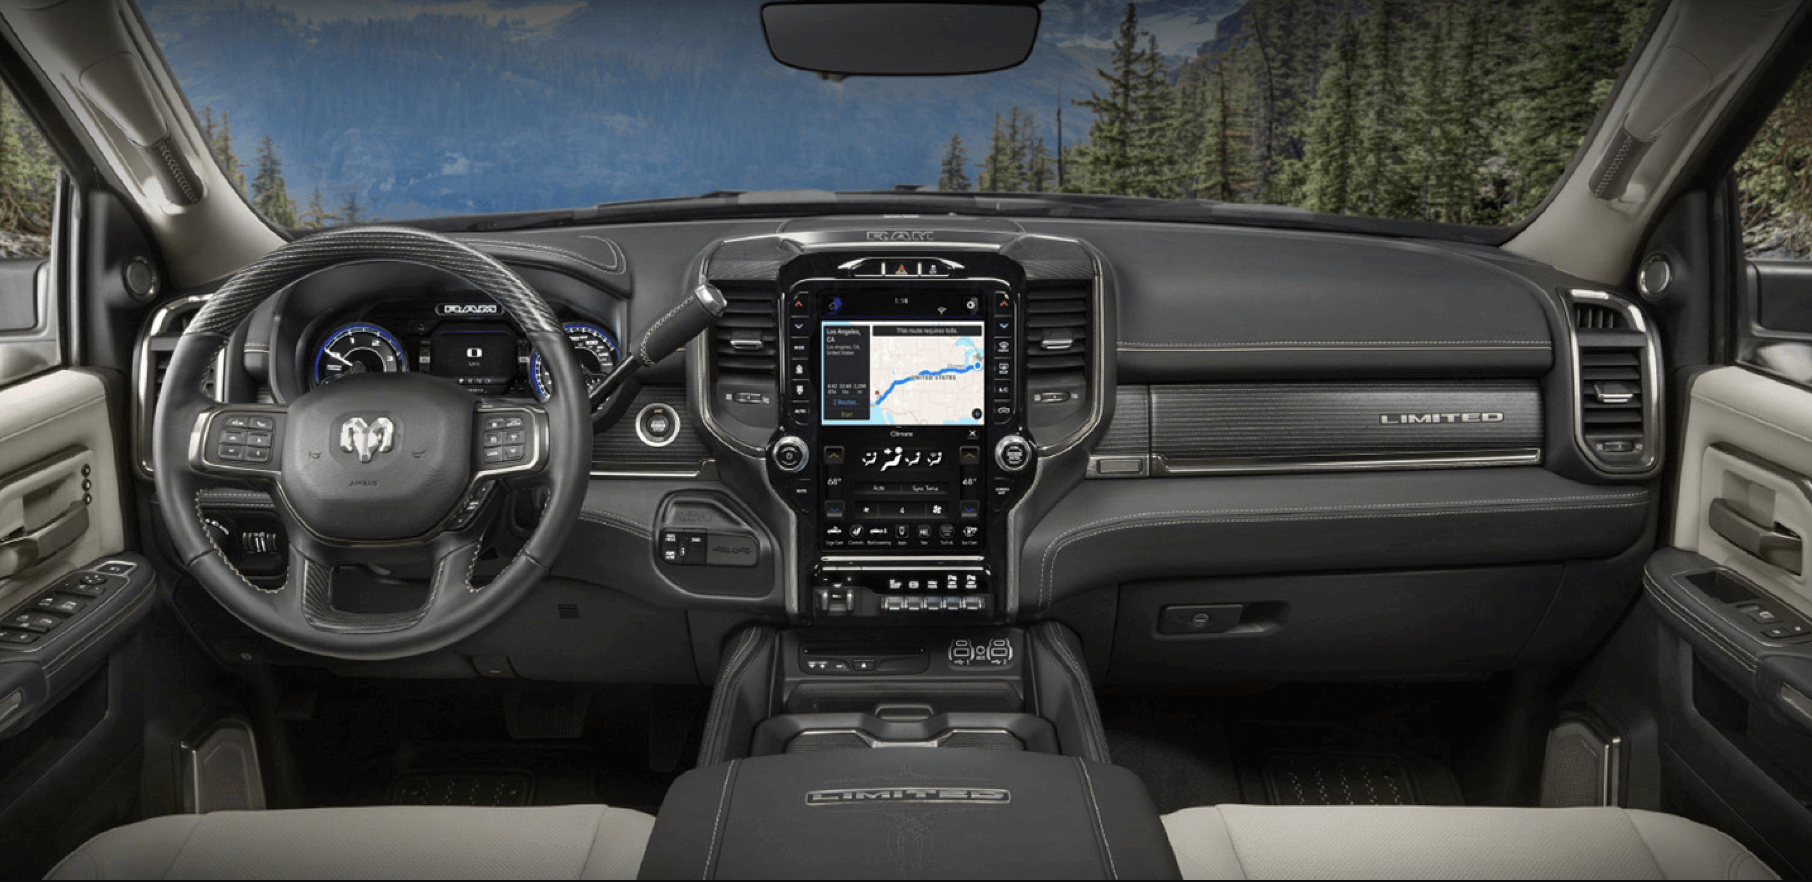 Interior tech of the RAM 2500